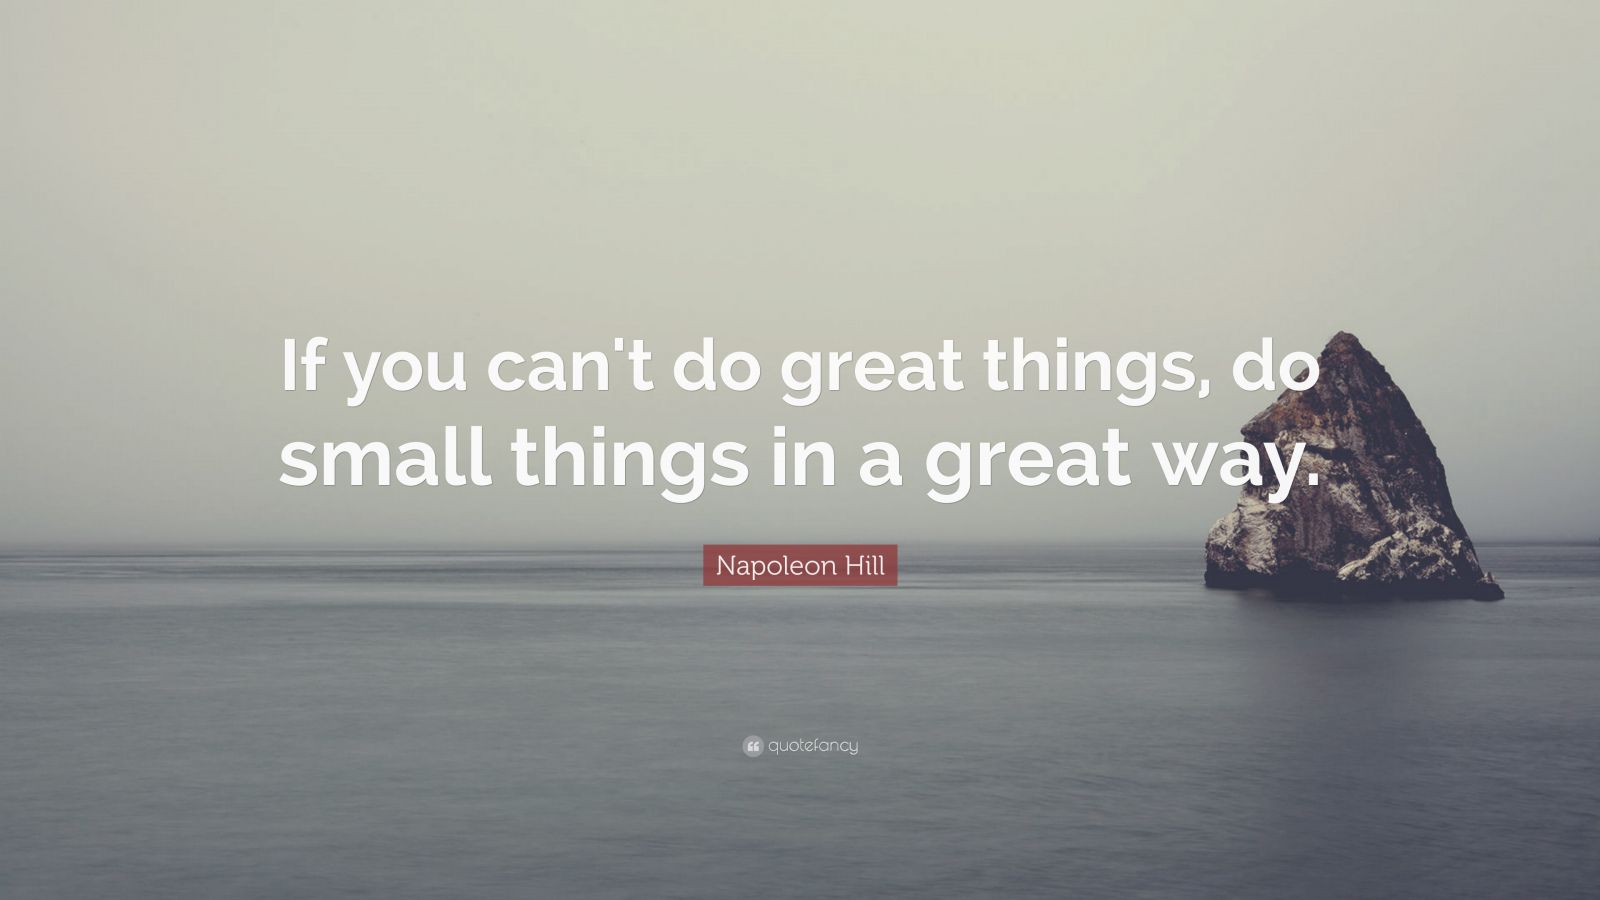 "Inspirational Entrepreneurship Quotes: ""If you can't do great things, do small things in a great way."" — Napoleon Hill"